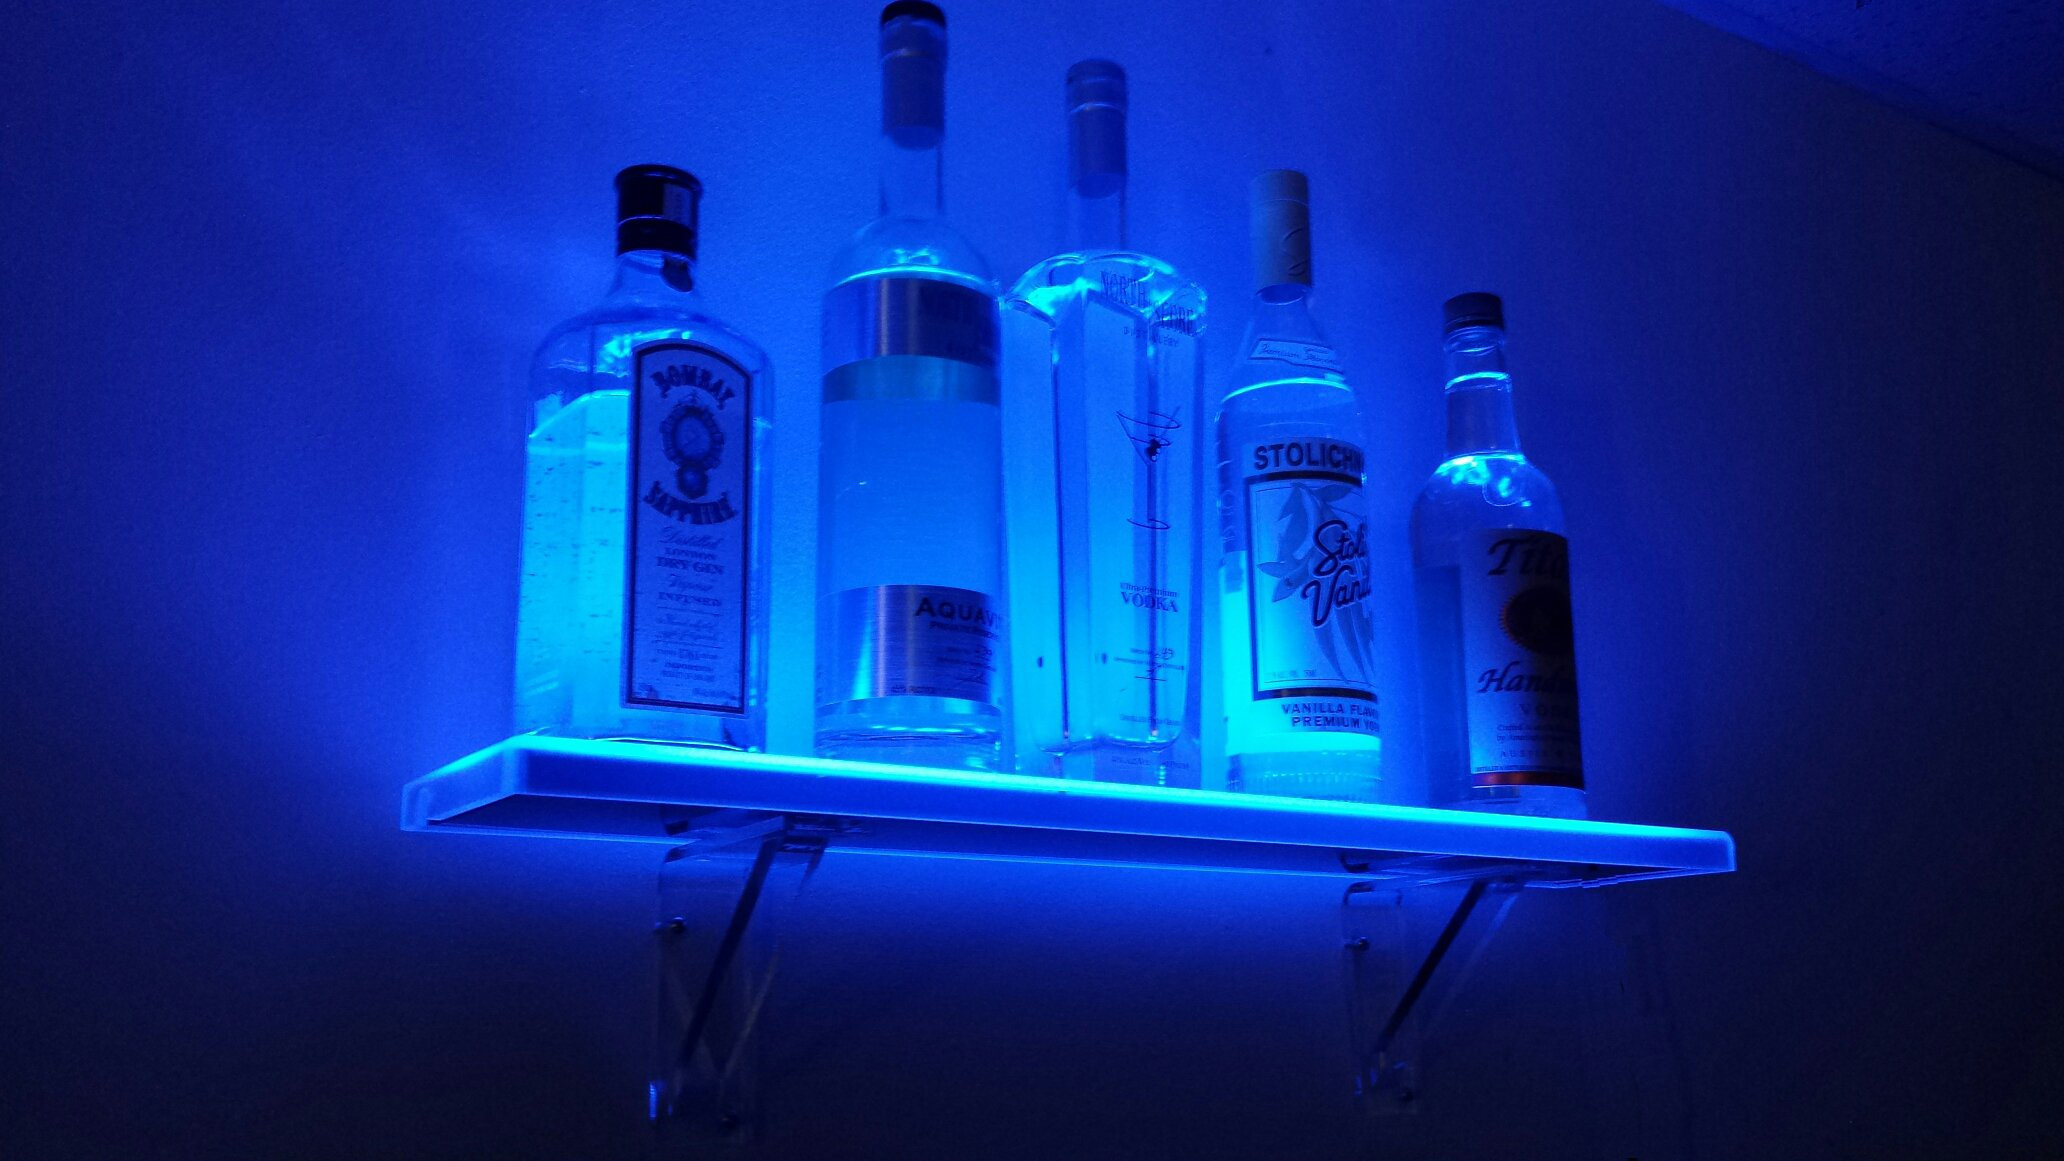 4 Foot Wall Mount LED Liquor Shelf - Made in the USA - Includes Wireless Remote Control, Wall brackets and hardware, and UL Listed Power Supply (48'' L x 4.5'' Deep x .75'' Thick)